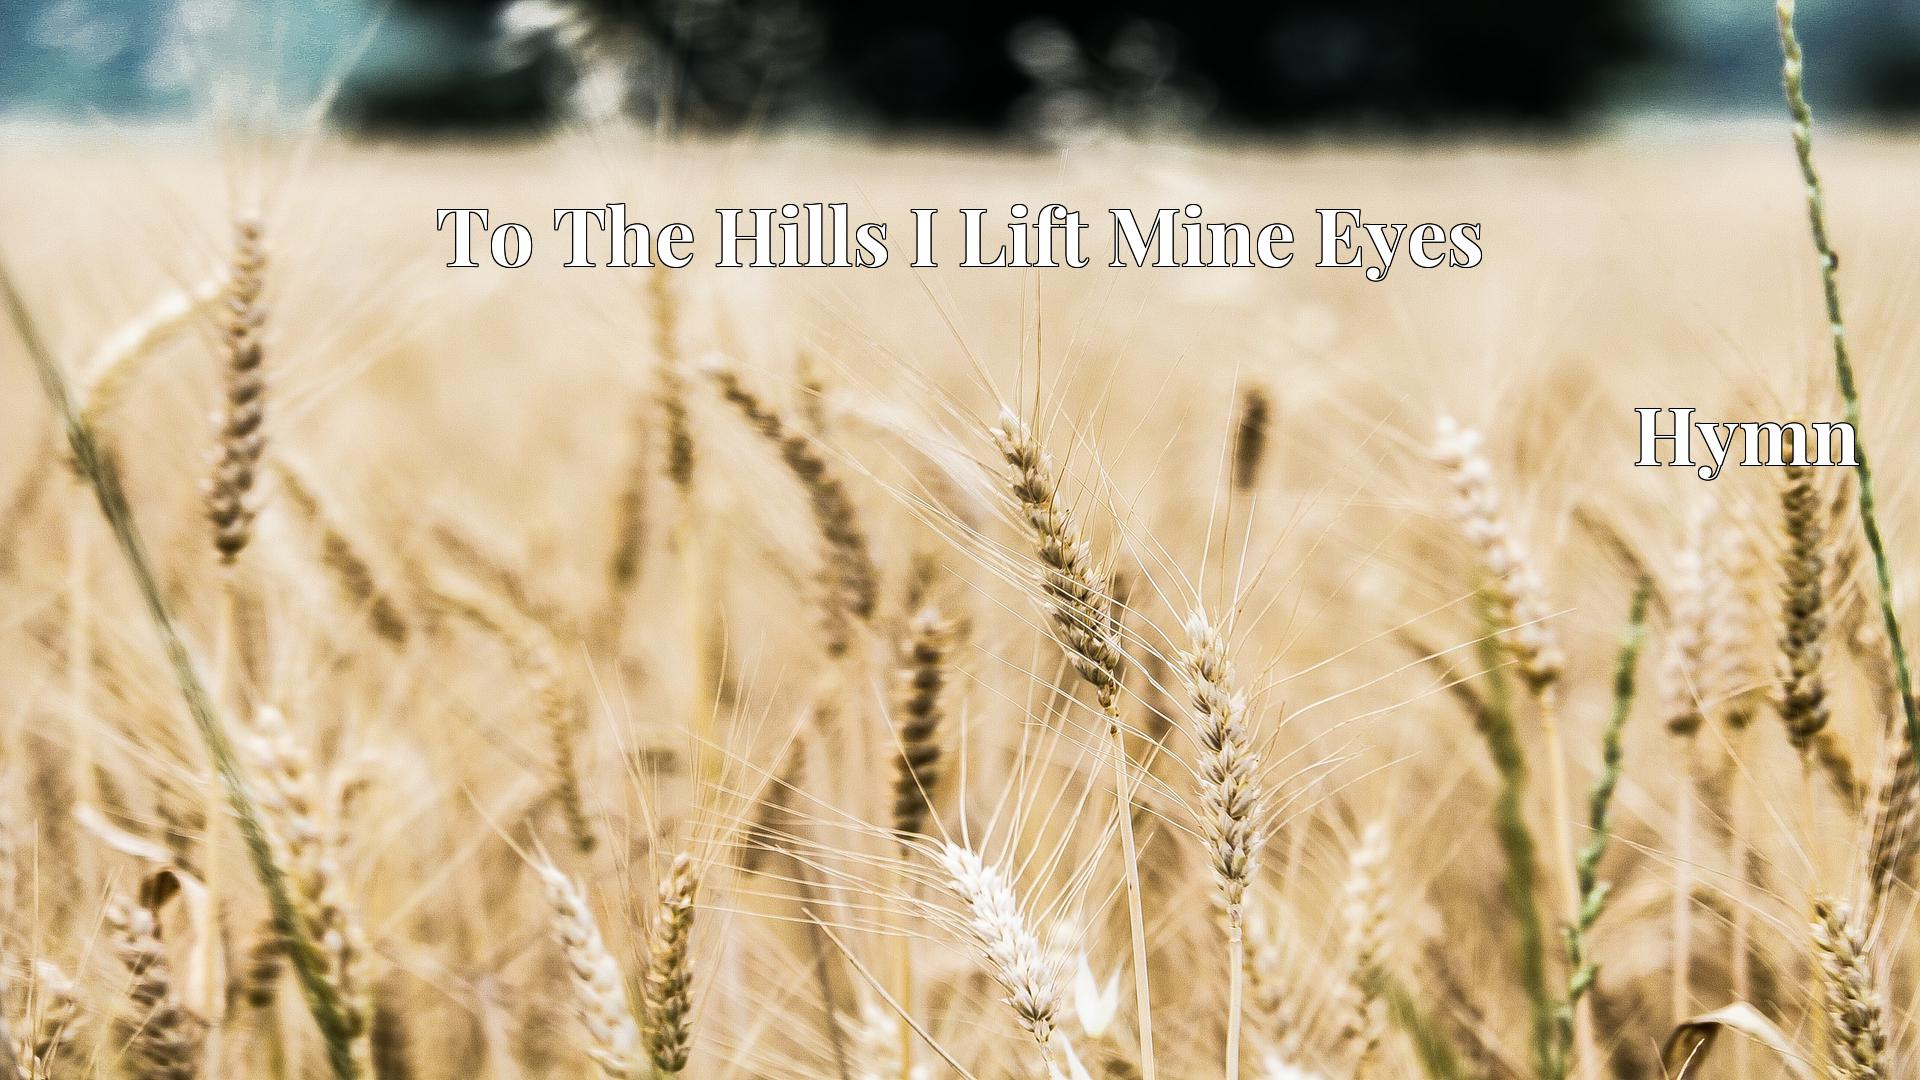 To The Hills I Lift Mine Eyes - Hymn